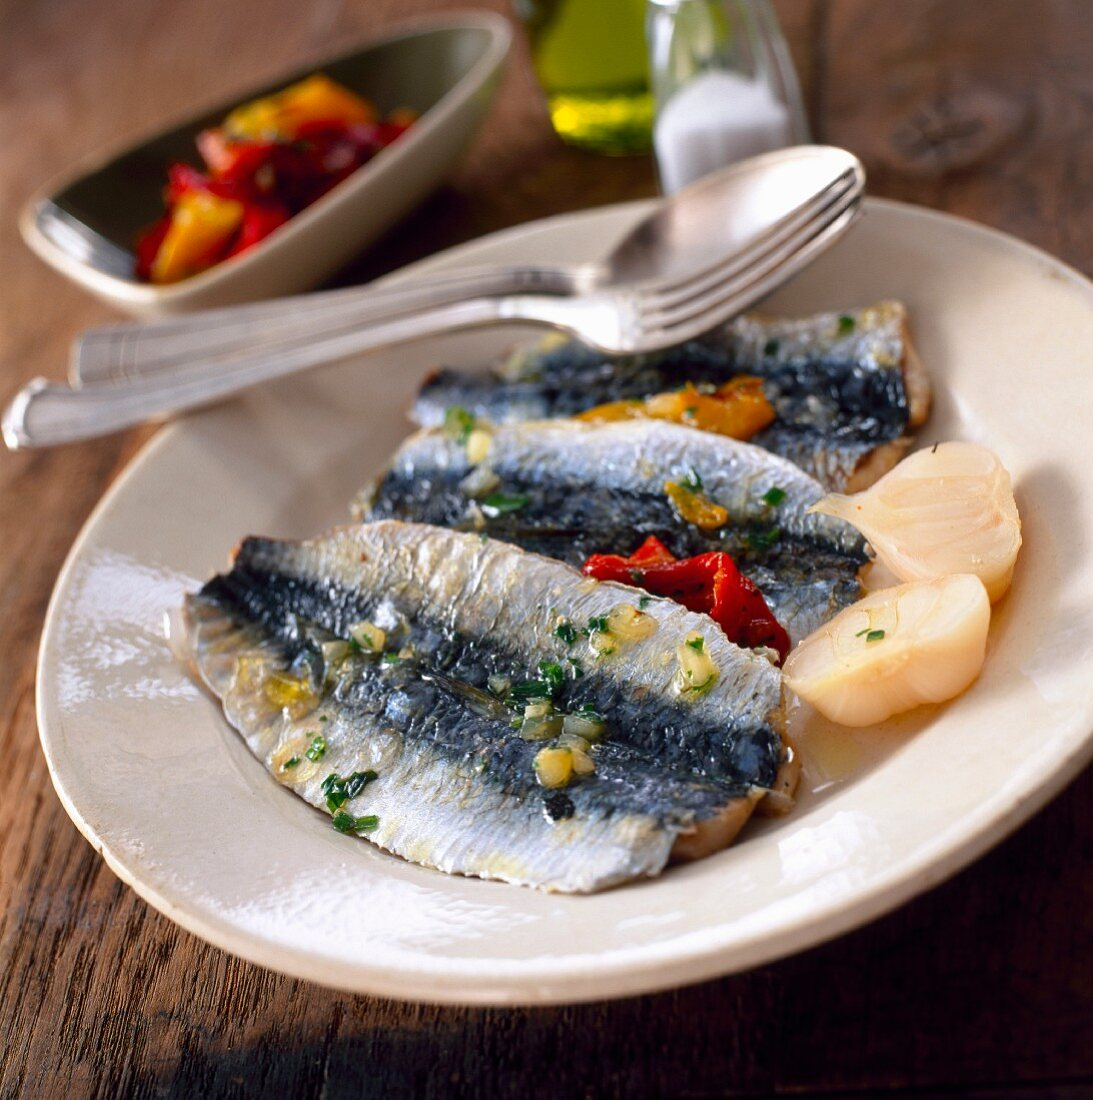 Sardine fillets with marinated peppers